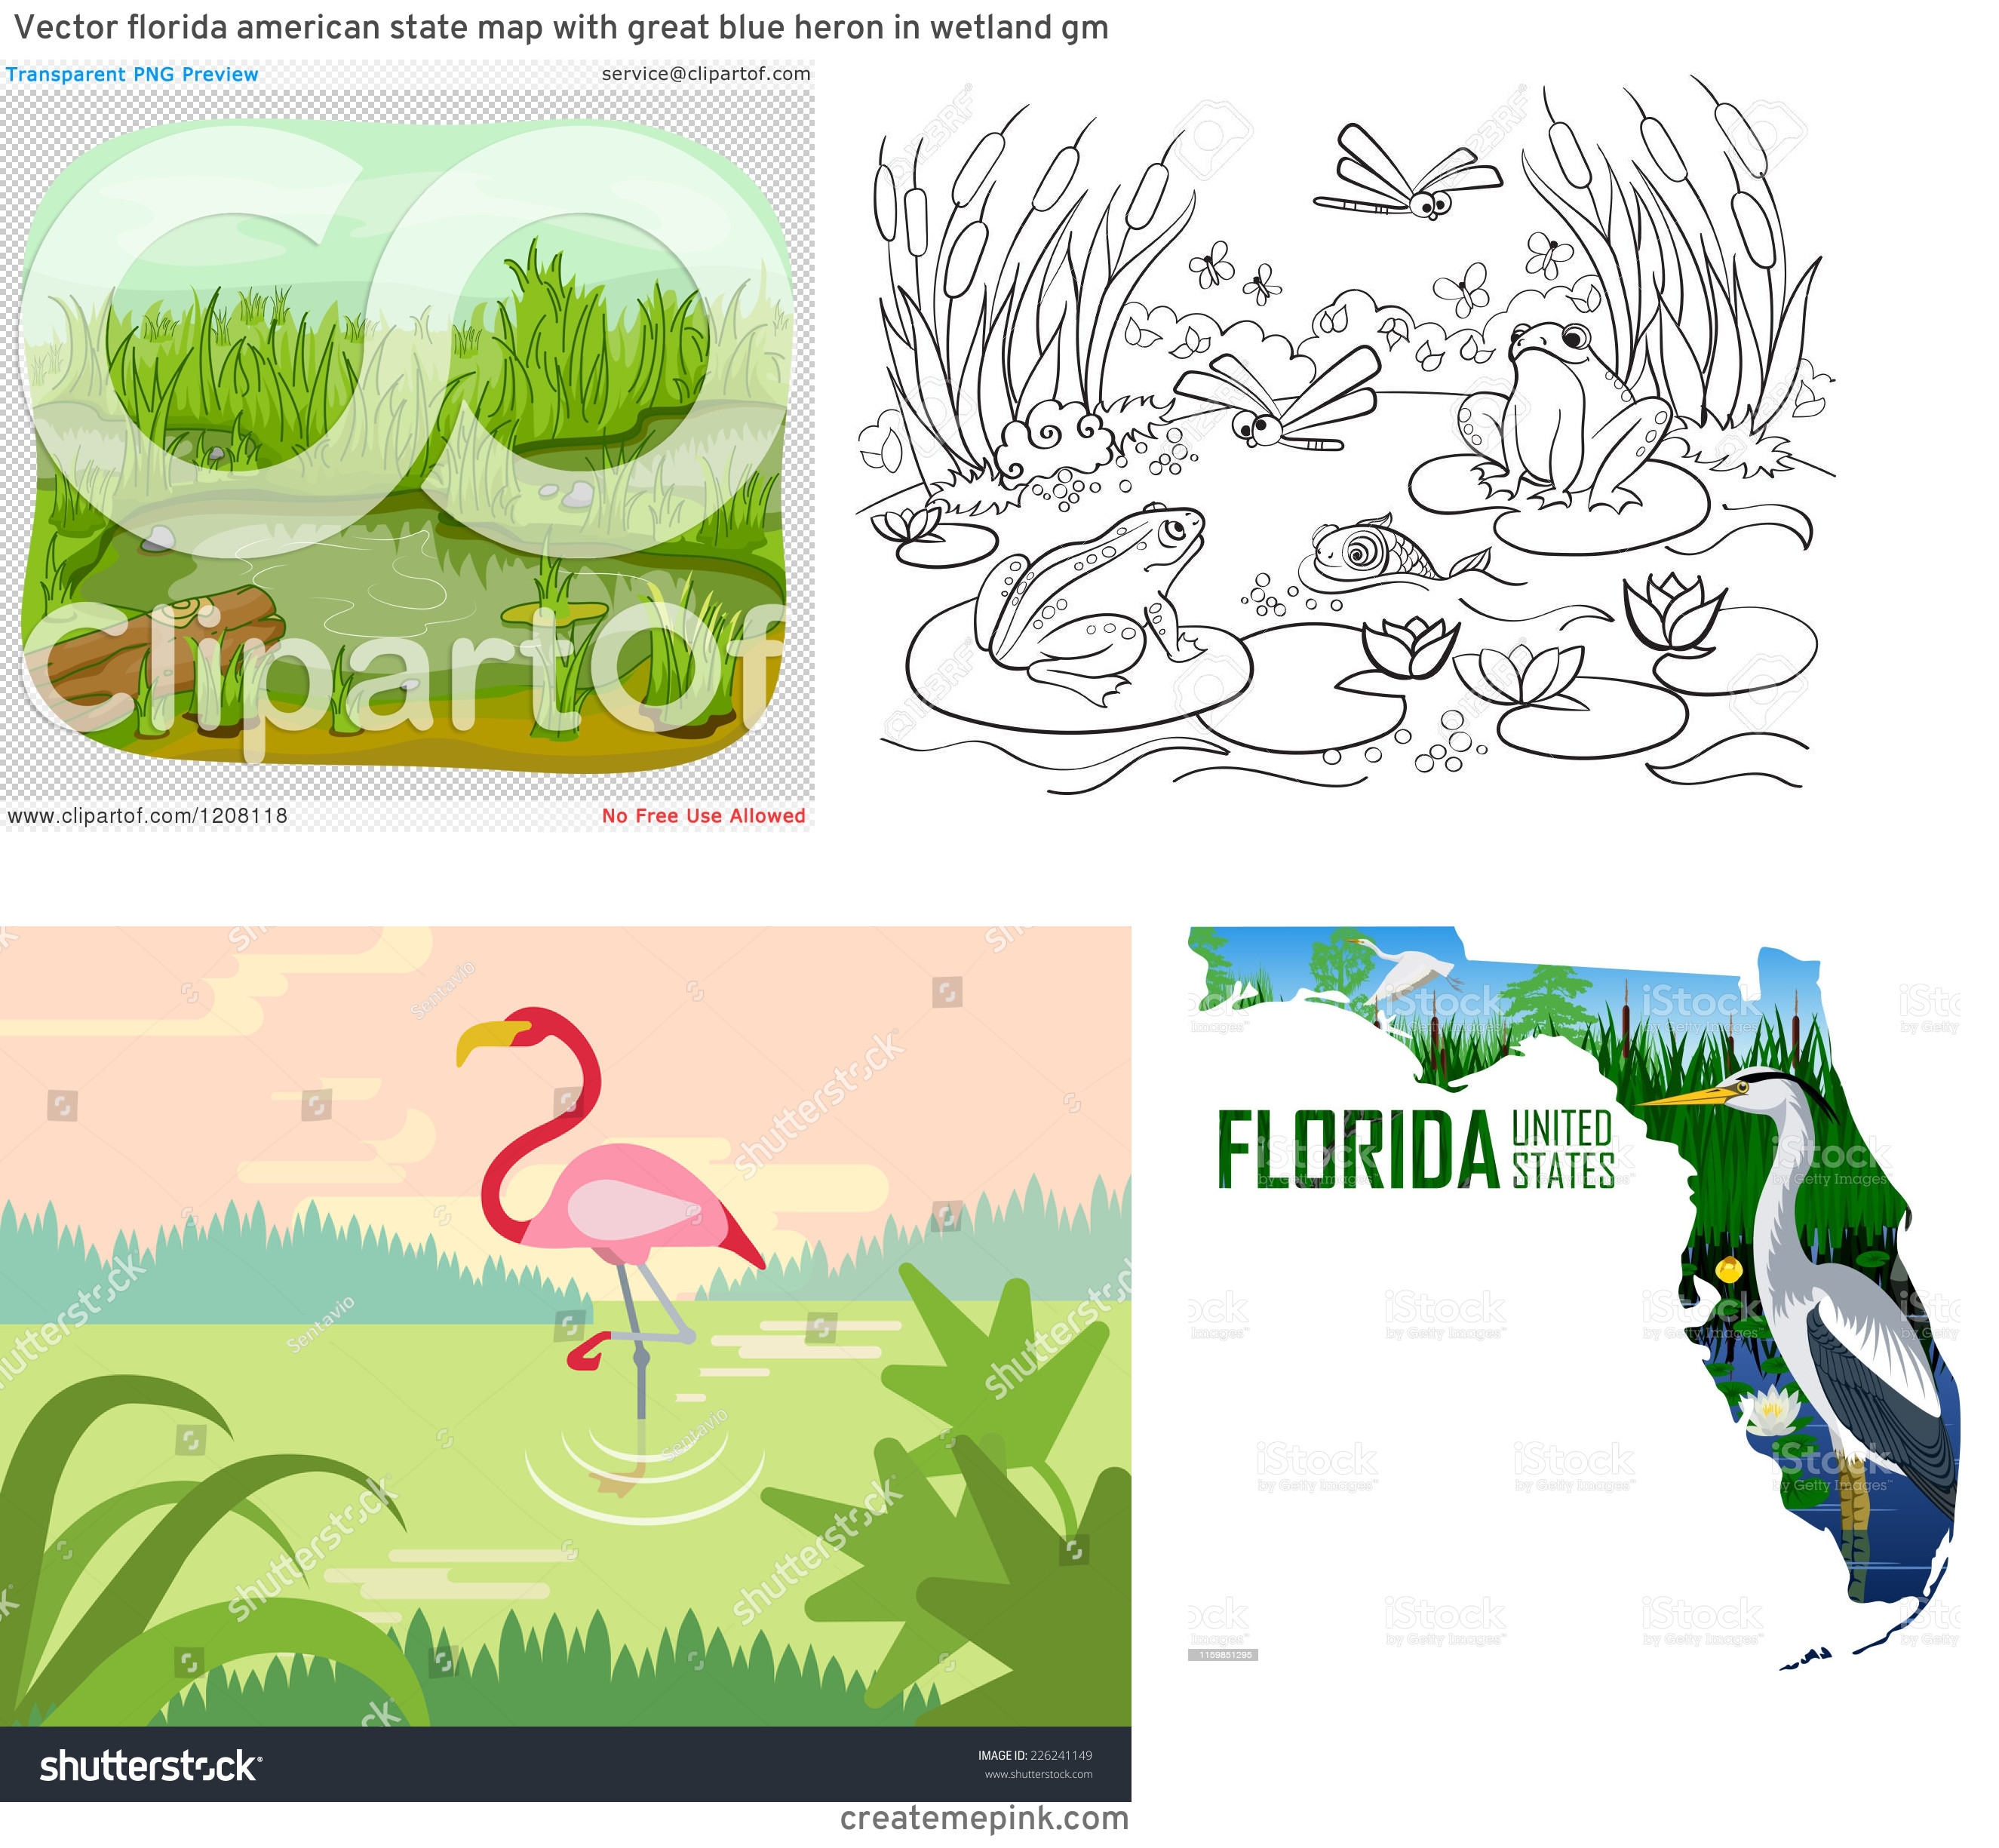 Vector Wetland: Vector Florida American State Map With Great Blue Heron In Wetland Gm